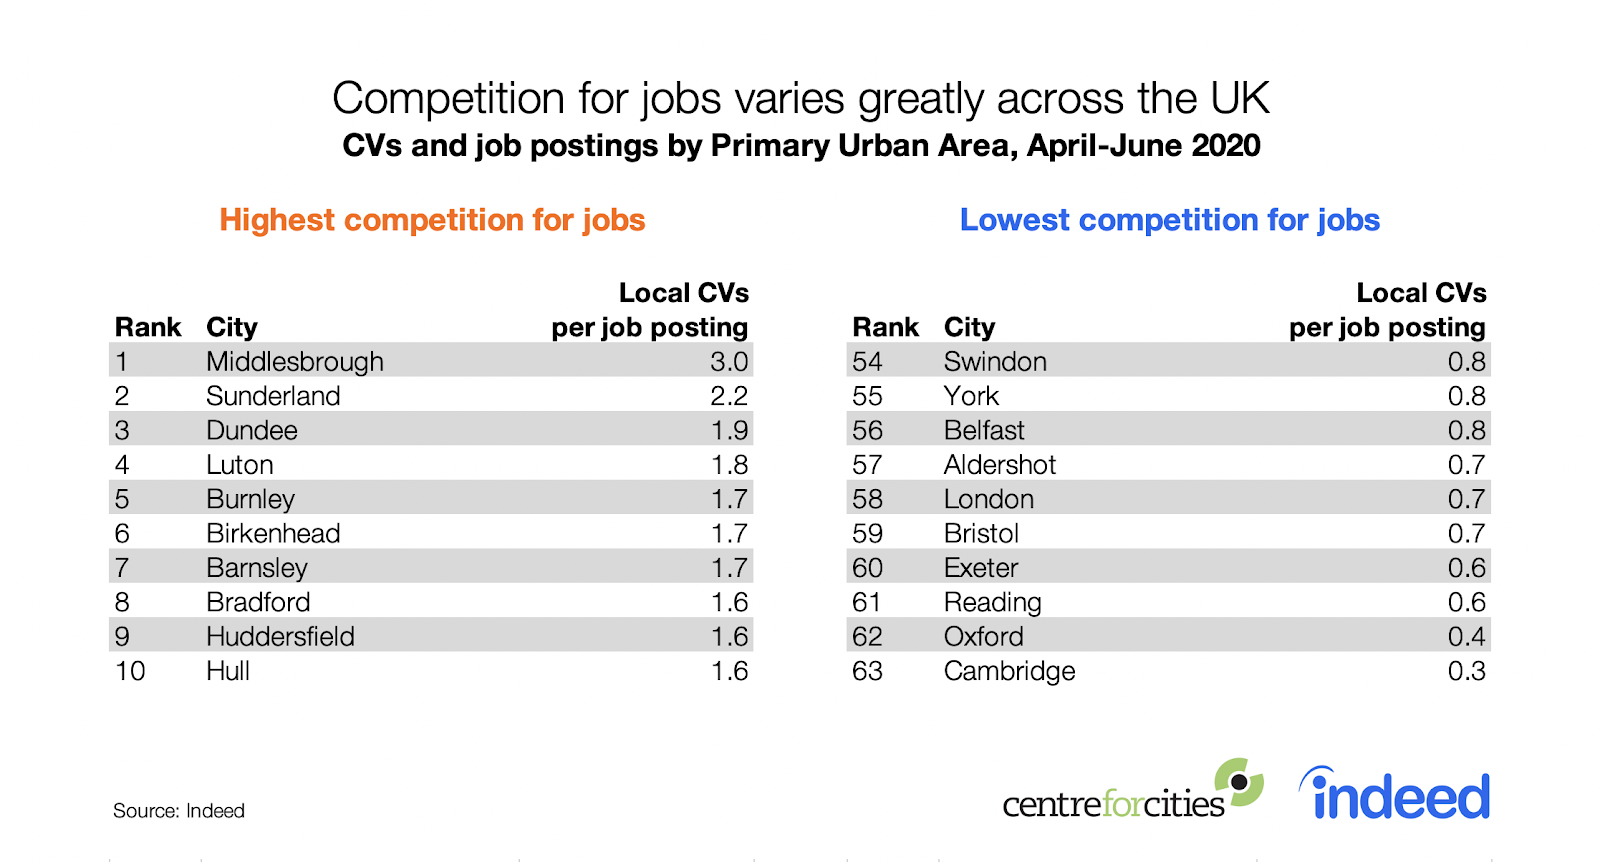 Competition for jobs varies greatly across the UK